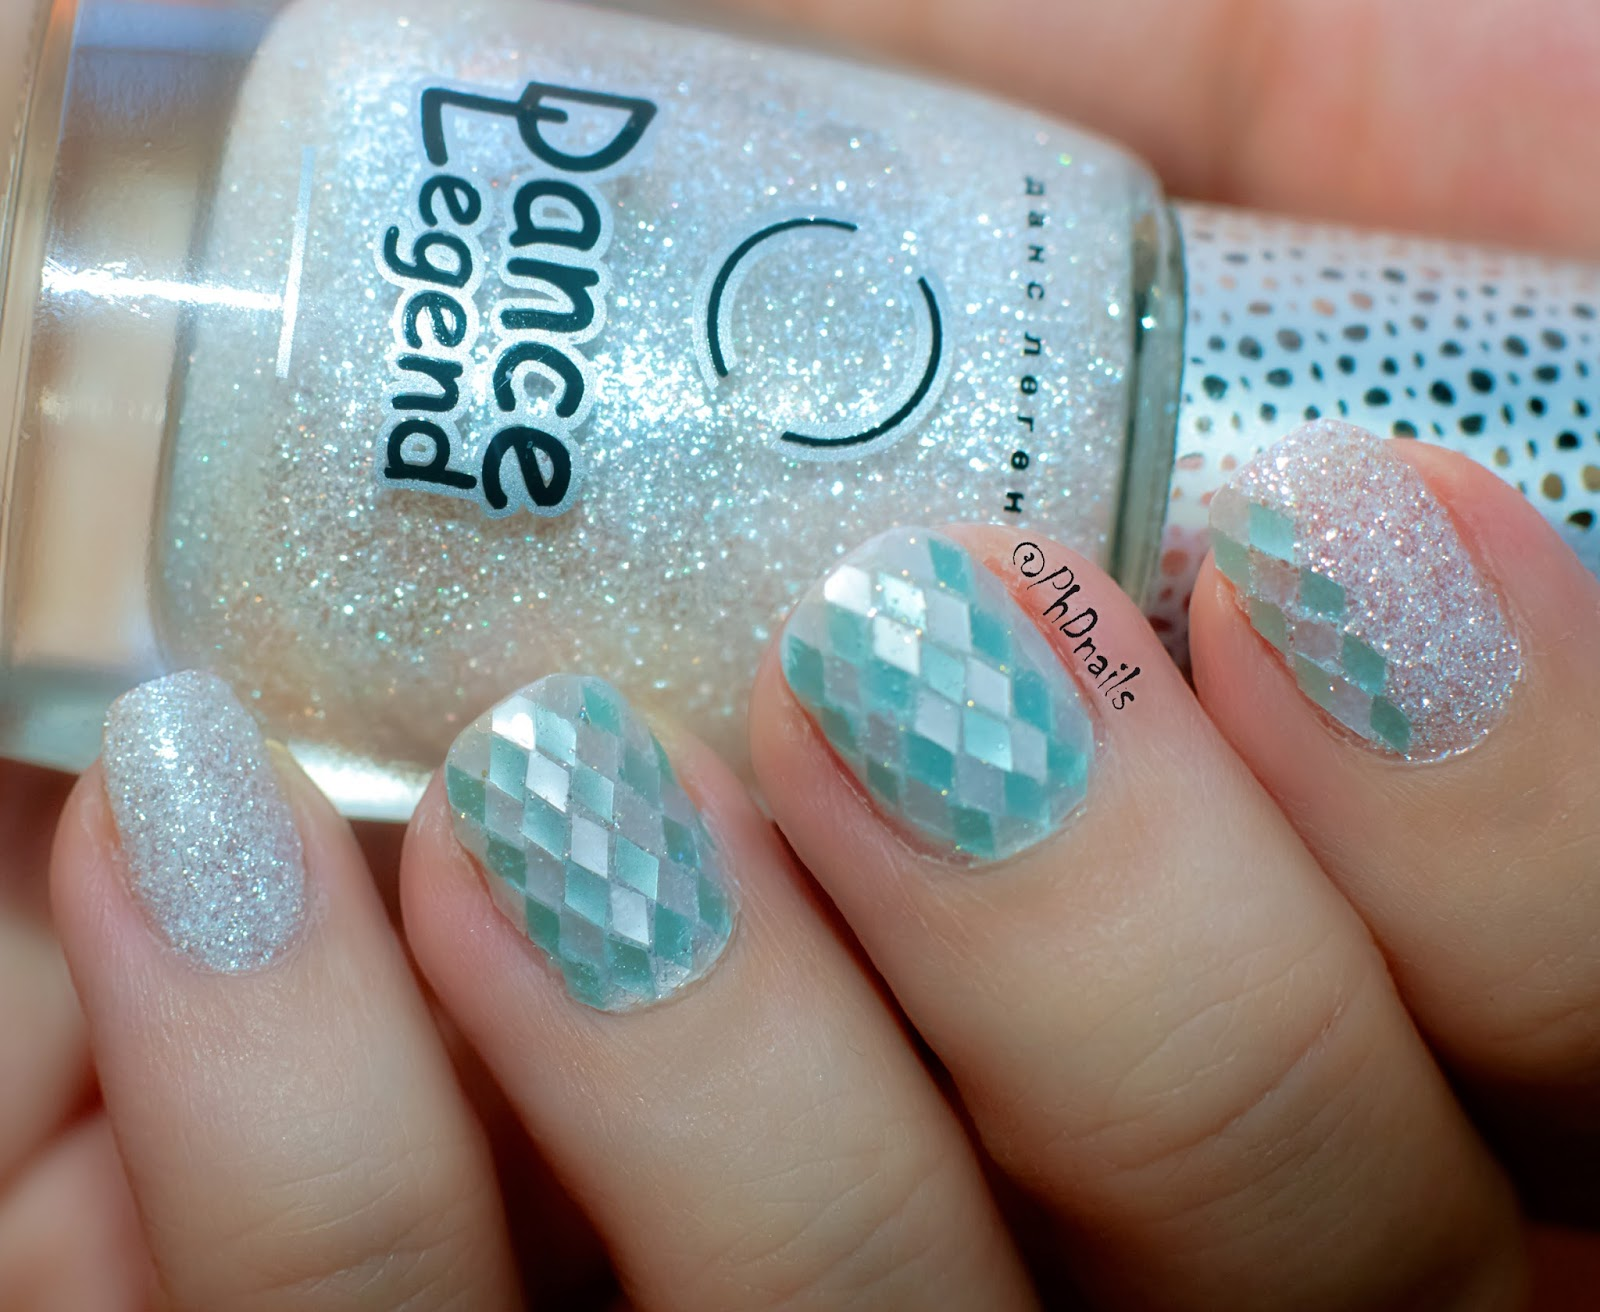 Phd Nails Hpb Presents Glitter Placement Nail Art With Dance